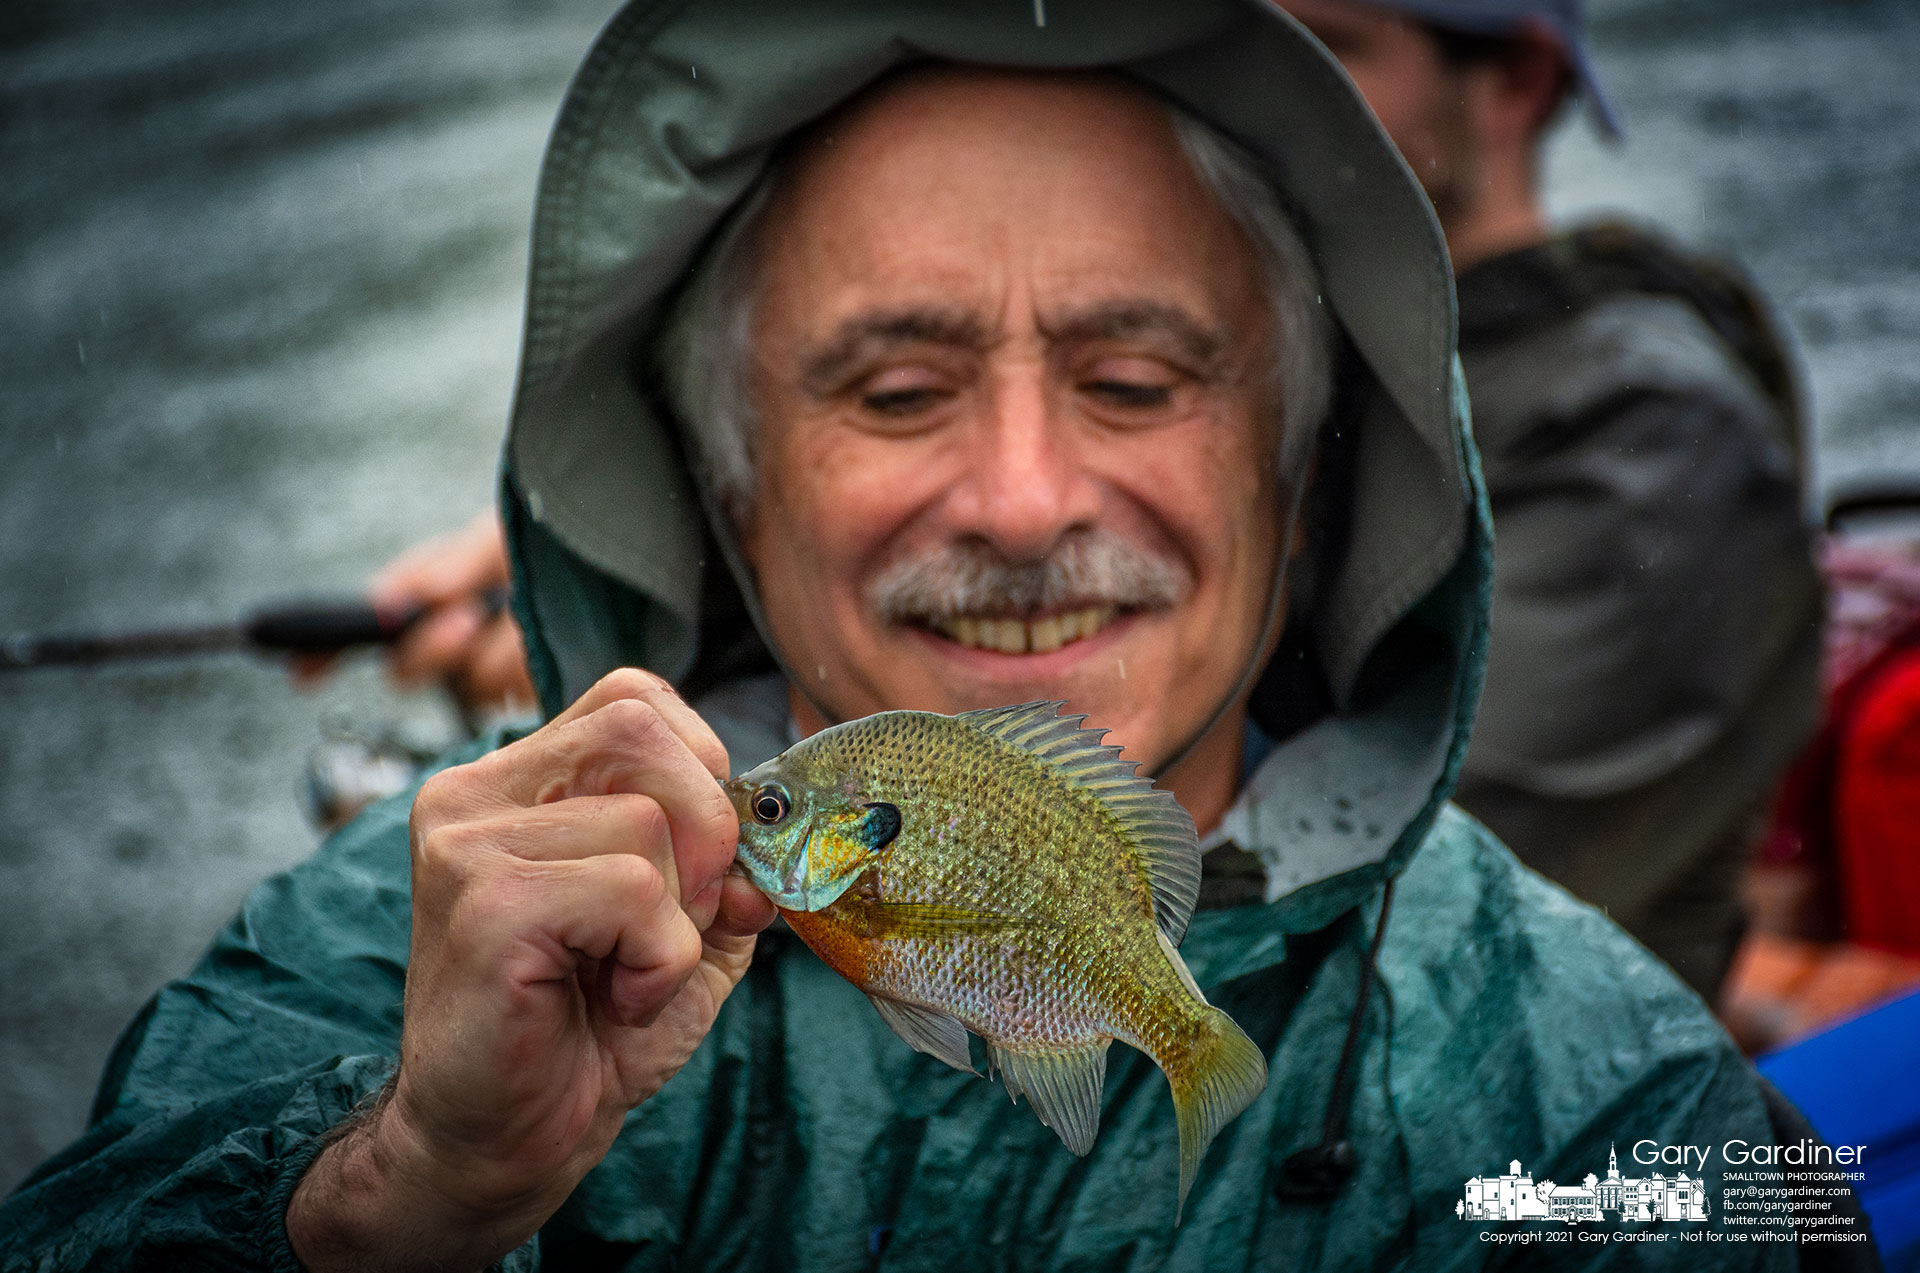 A fisherman admires one of the smaller bluegills he pulled in from a lagoon on the western edge of Hoover Reservoir during Tuesday's almost constant rain showers. My Final Photo for Aug. 17, 2021.